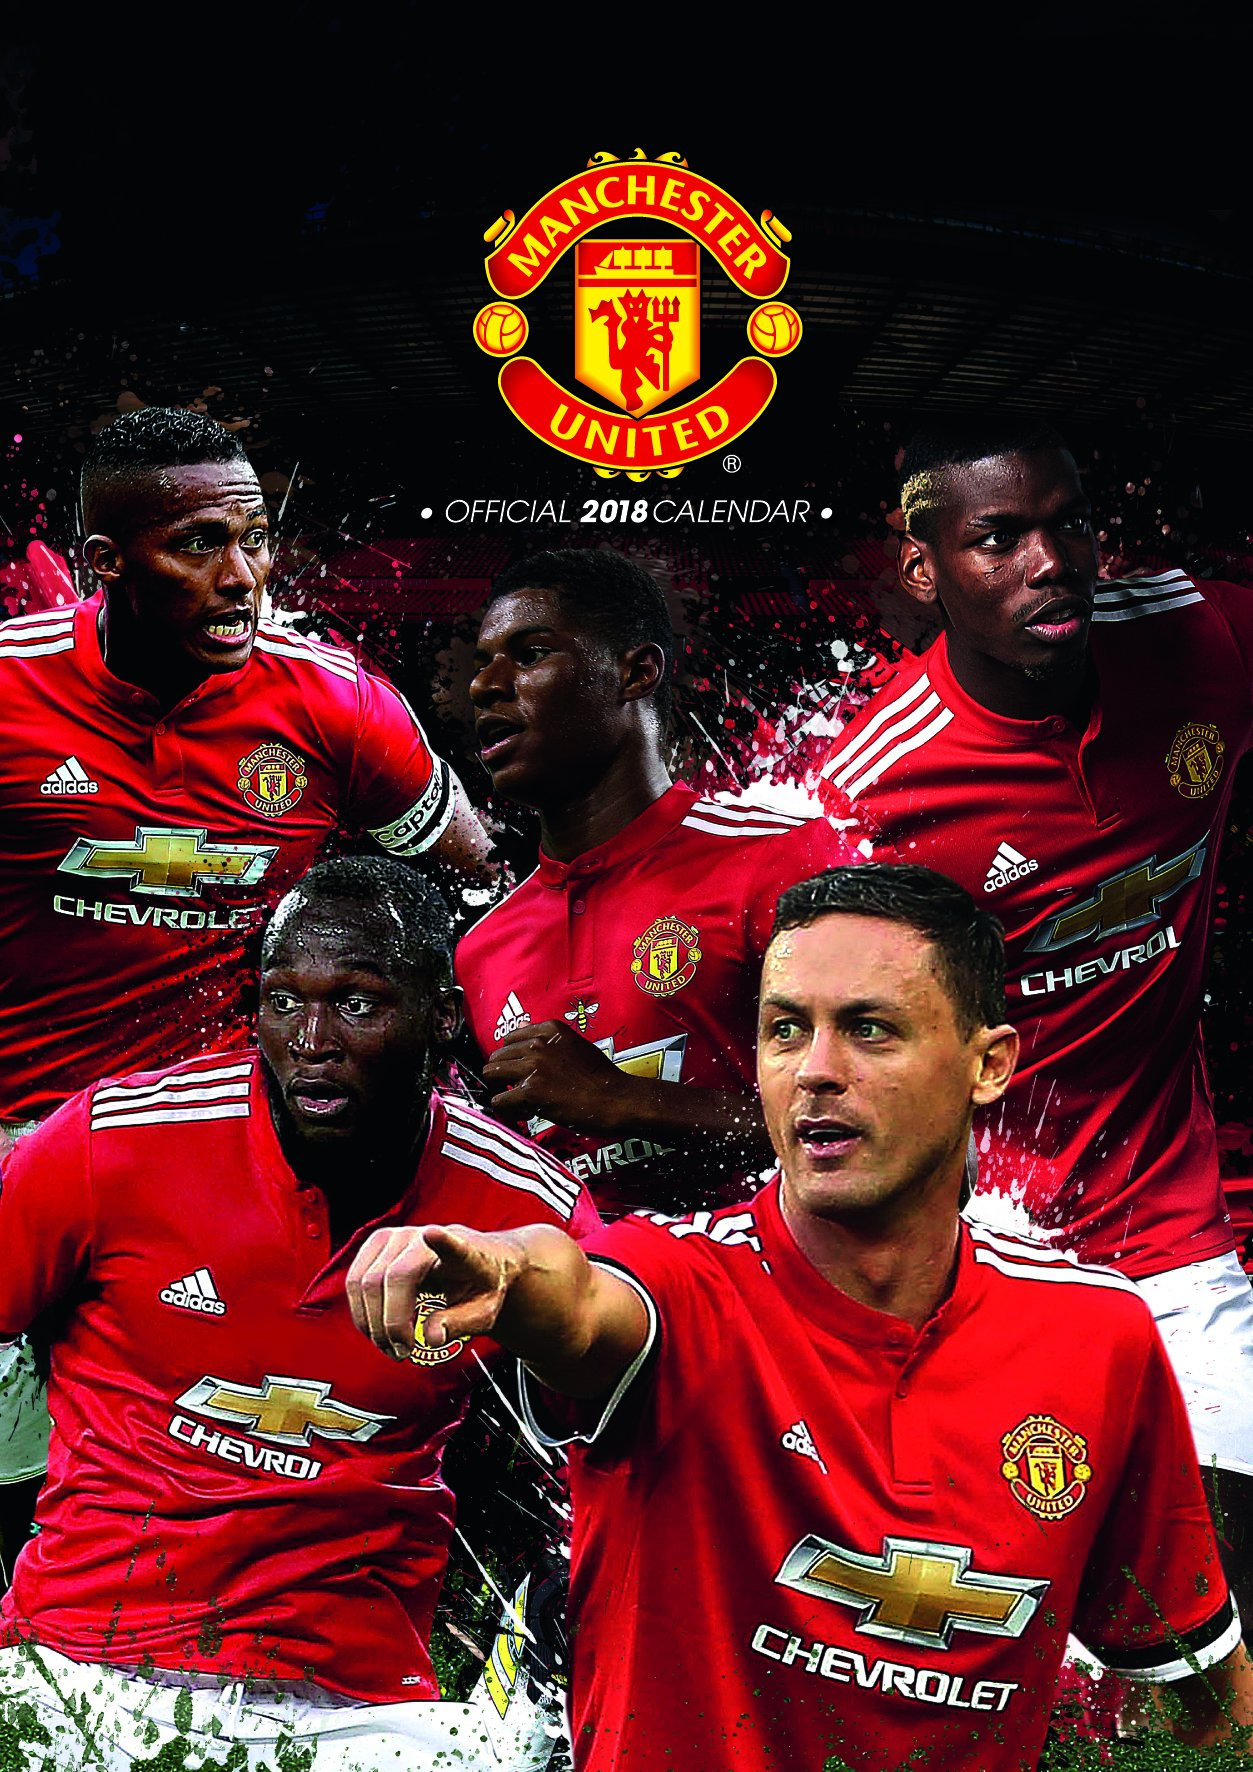 Manchester United F C Official 2018 Calendar A3 Poster Format Calendar Calendar 2018 Amazon Co Uk Manchester Utd Books